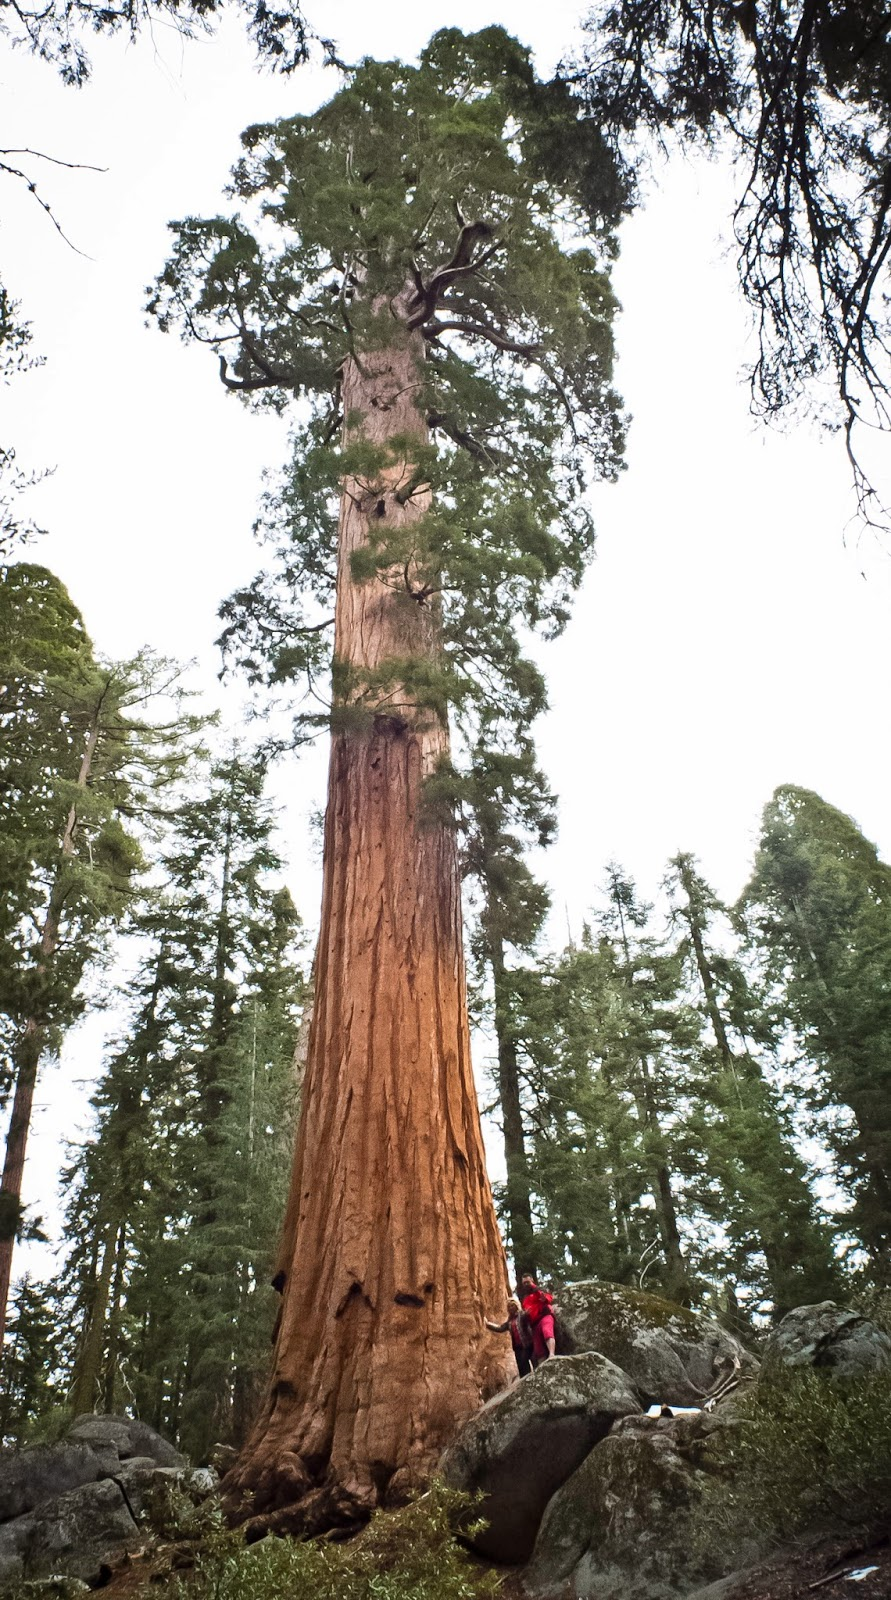 California, Crannell Creek Giant, Earth, General Sherman, Giganteum, Highest Tree, Largest Tree, Living Tree, News, Oldest Tree, Sequoiadendron, Tallest Tree, Tress, Widest Tree, World  Largest Tree, Offbeat,